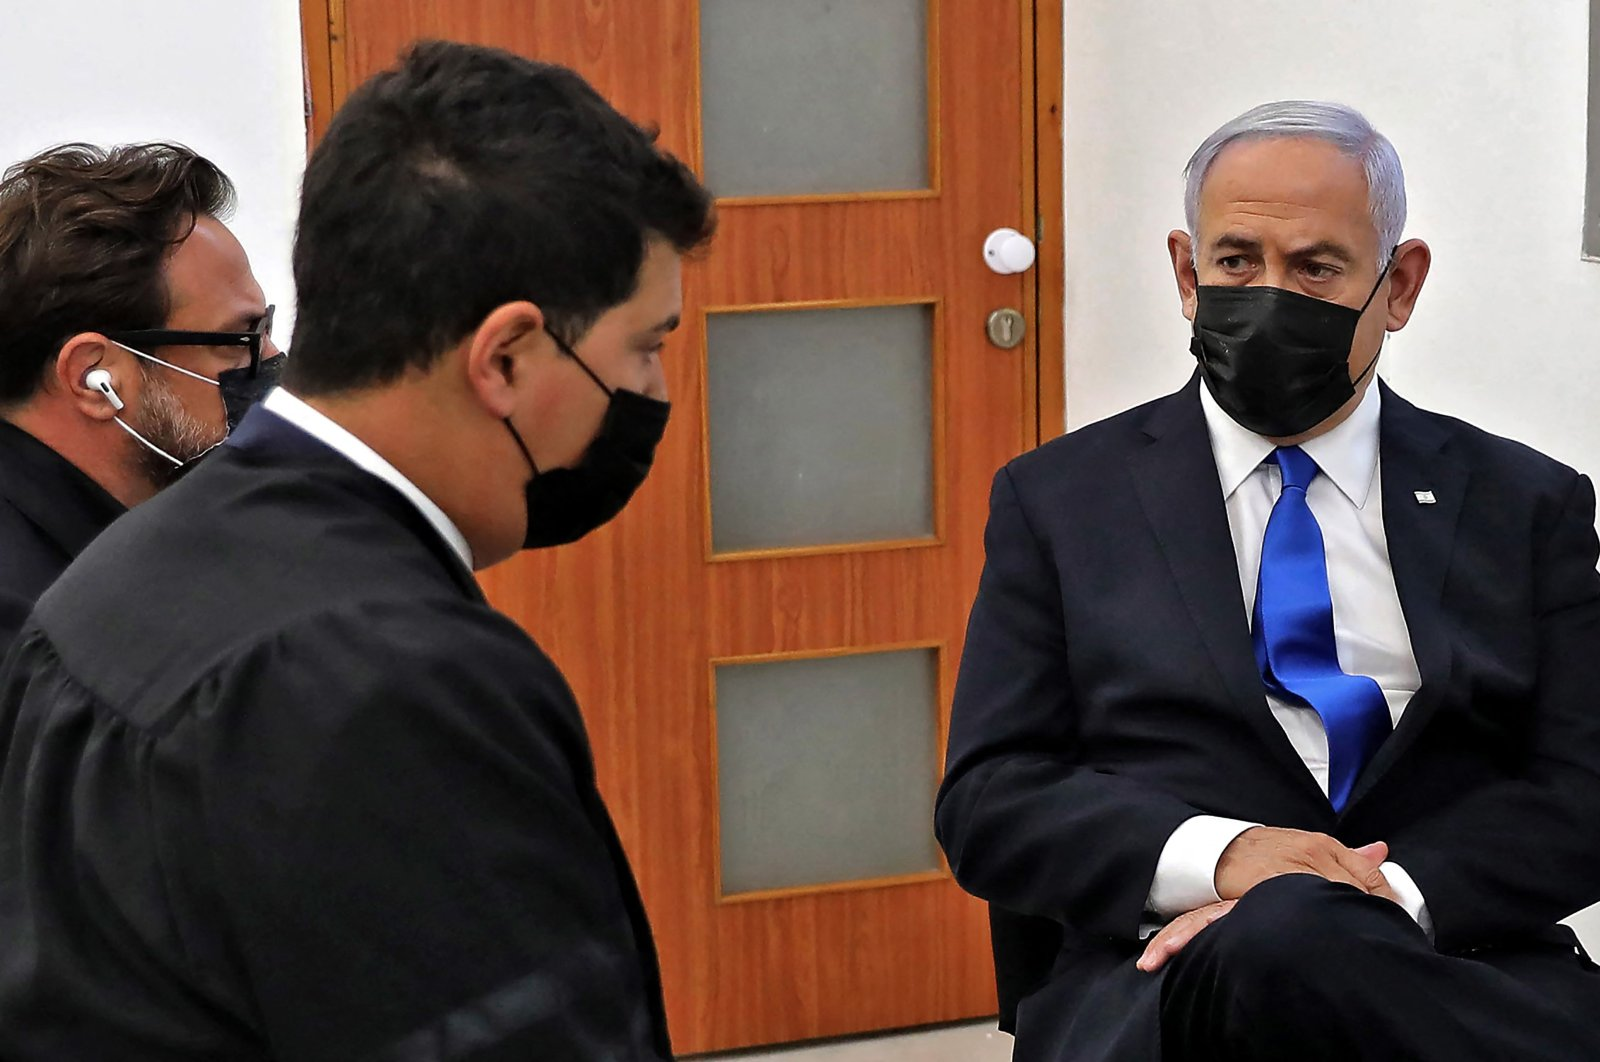 Israeli Prime Minister Benjamin Netanyahu (R) attends the hearing for his corruption trial at district court in Jerusalem on April 5, 2021. (AFP Photo)